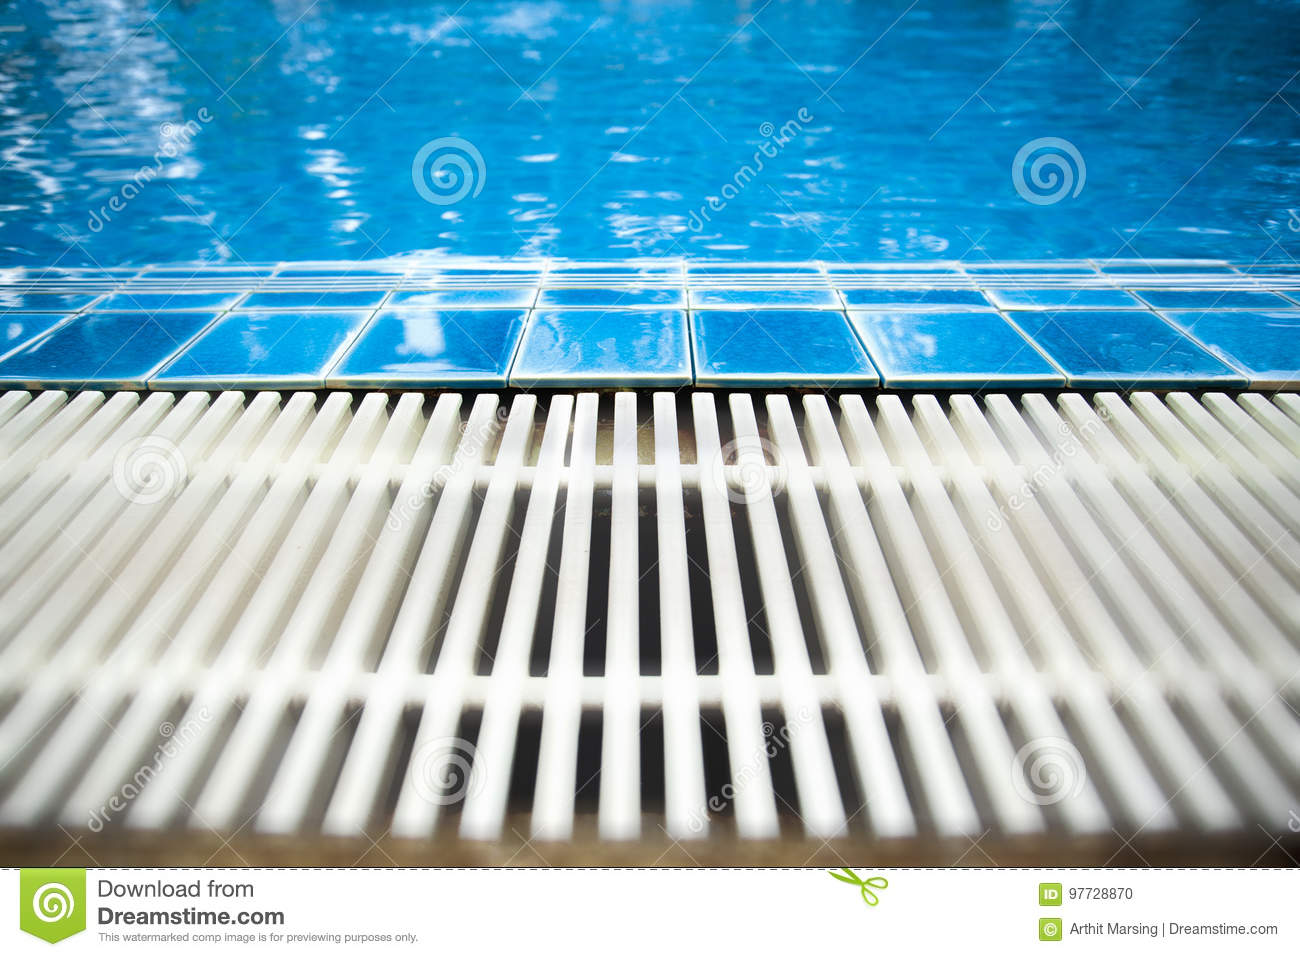 Swimming pool the picture took from the edge of swimming pool which provide by blue tiles and gutter drainage. Can be use as backg